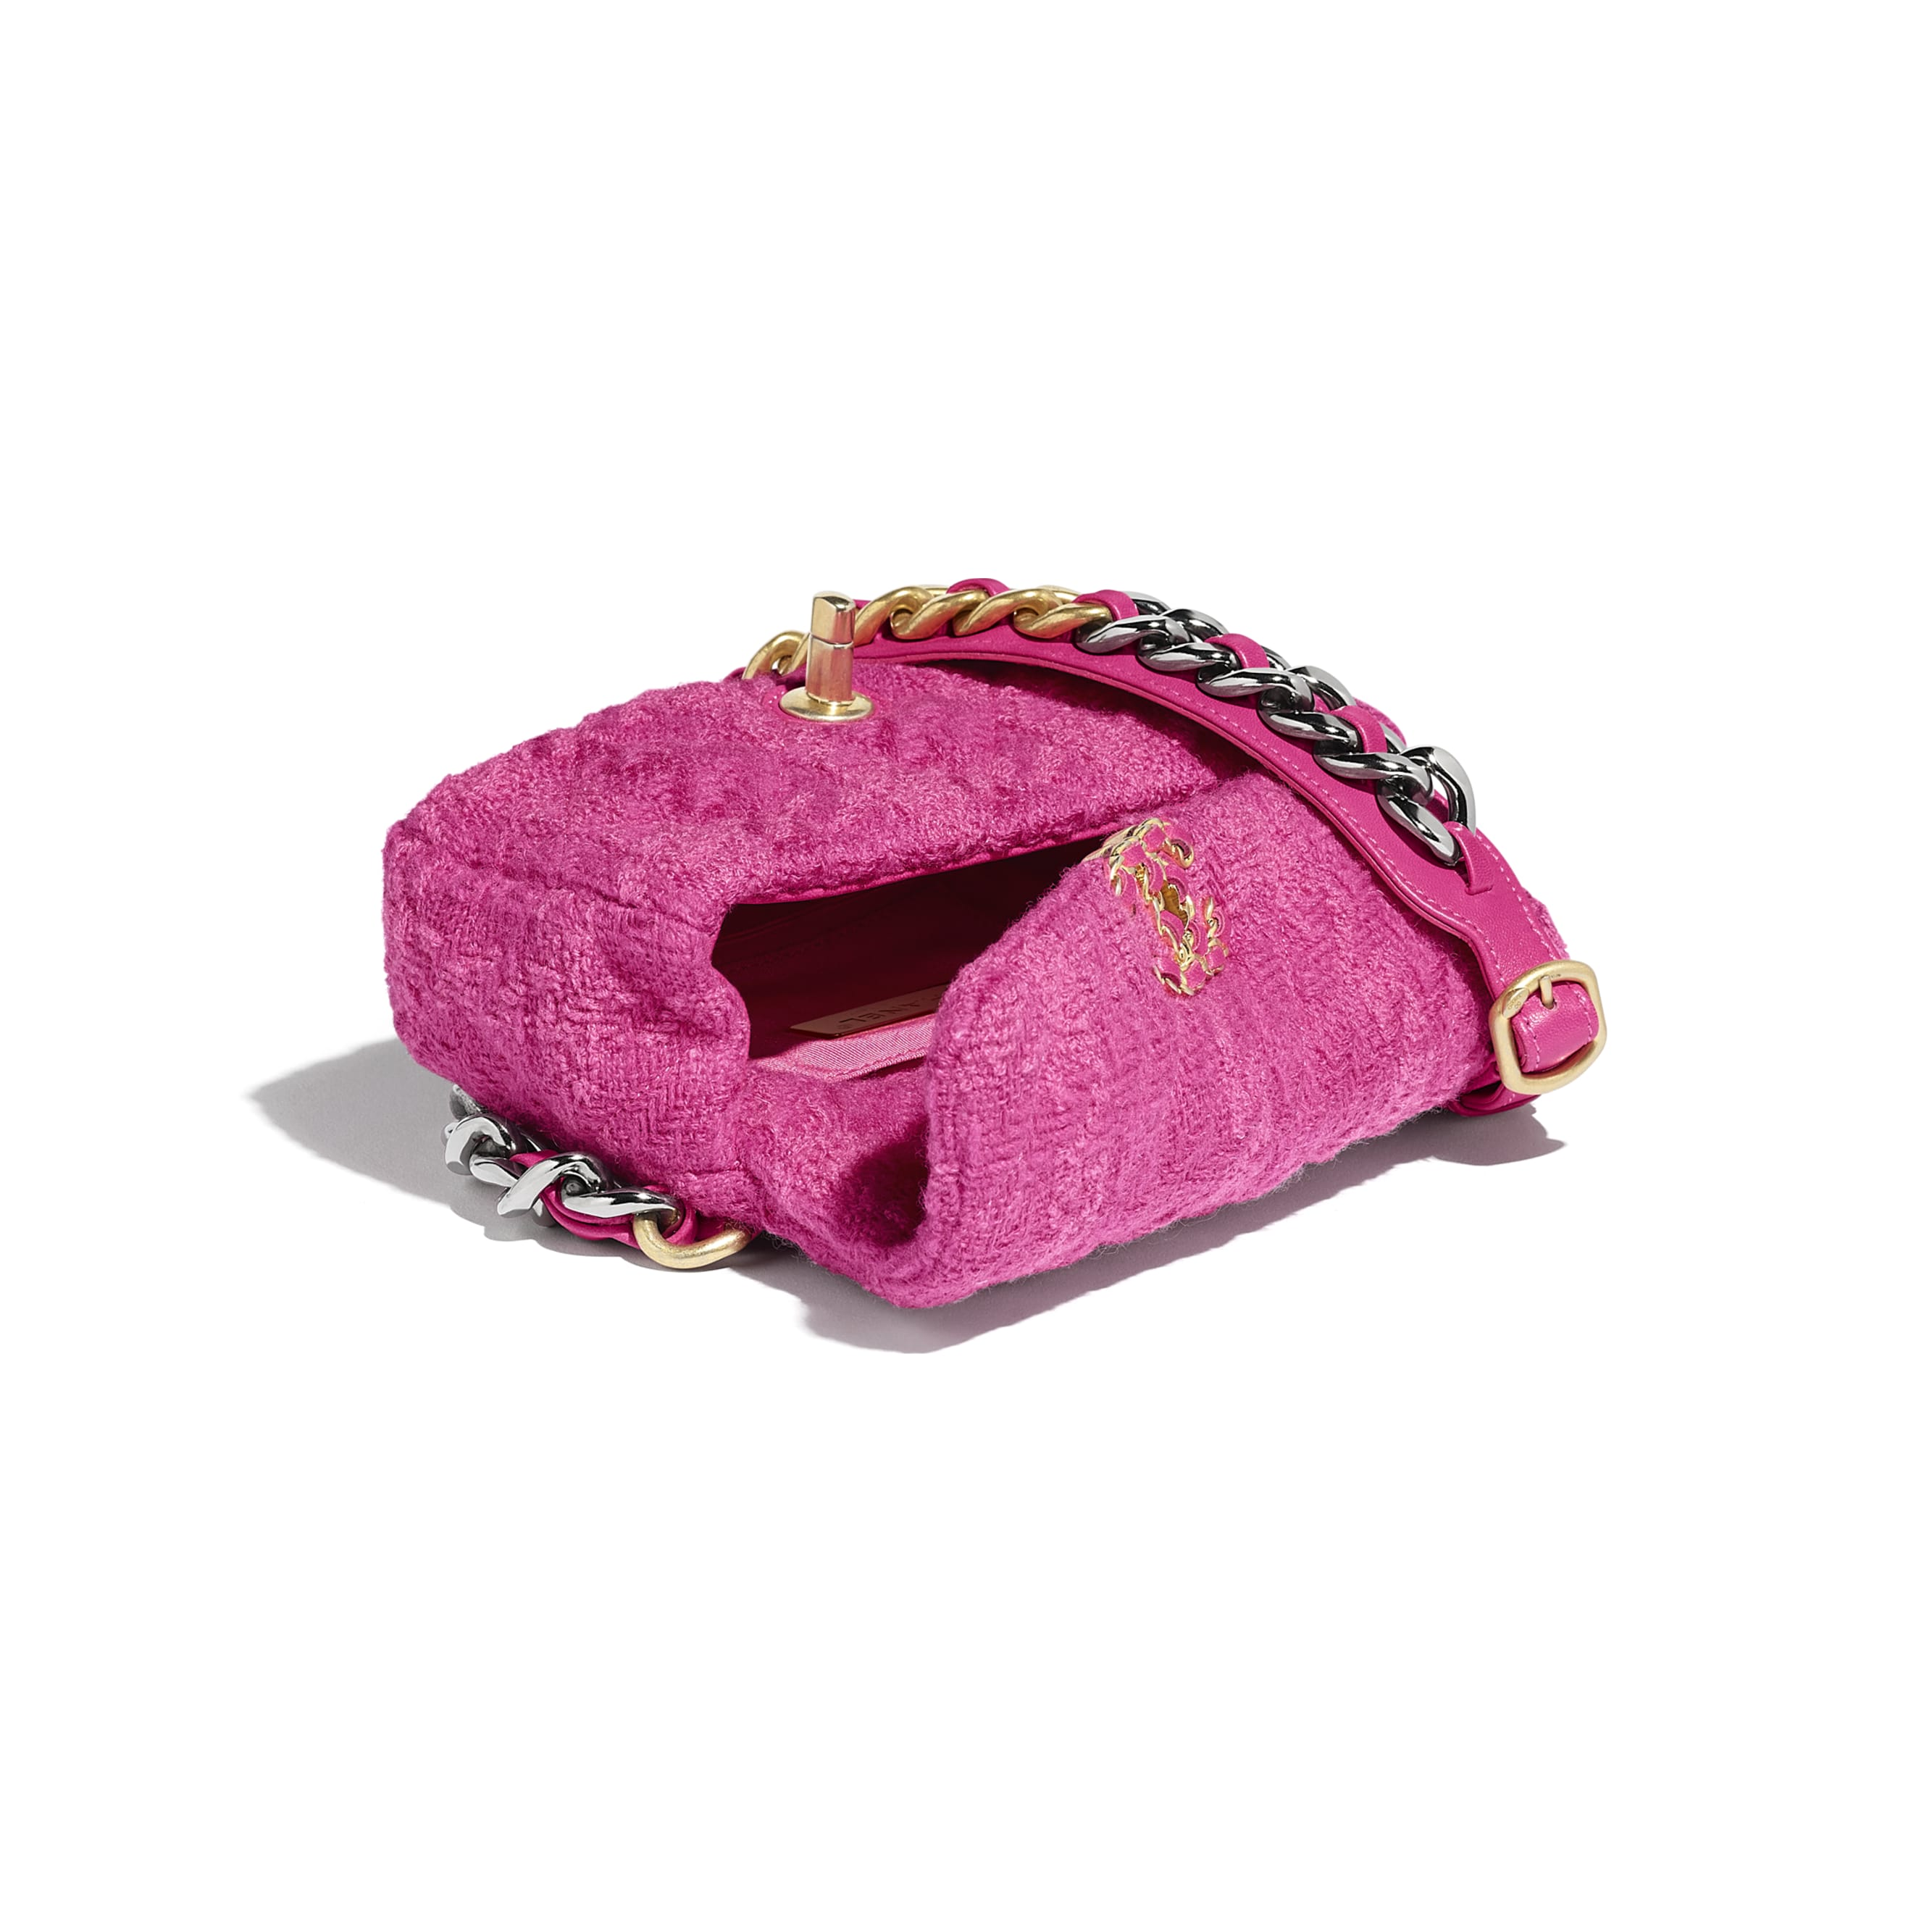 CHANEL 19 Waist Bag - Pink - Wool Tweed, Gold-Tone, Silver-Tone & Ruthenium-Finish Metal - Other view - see standard sized version